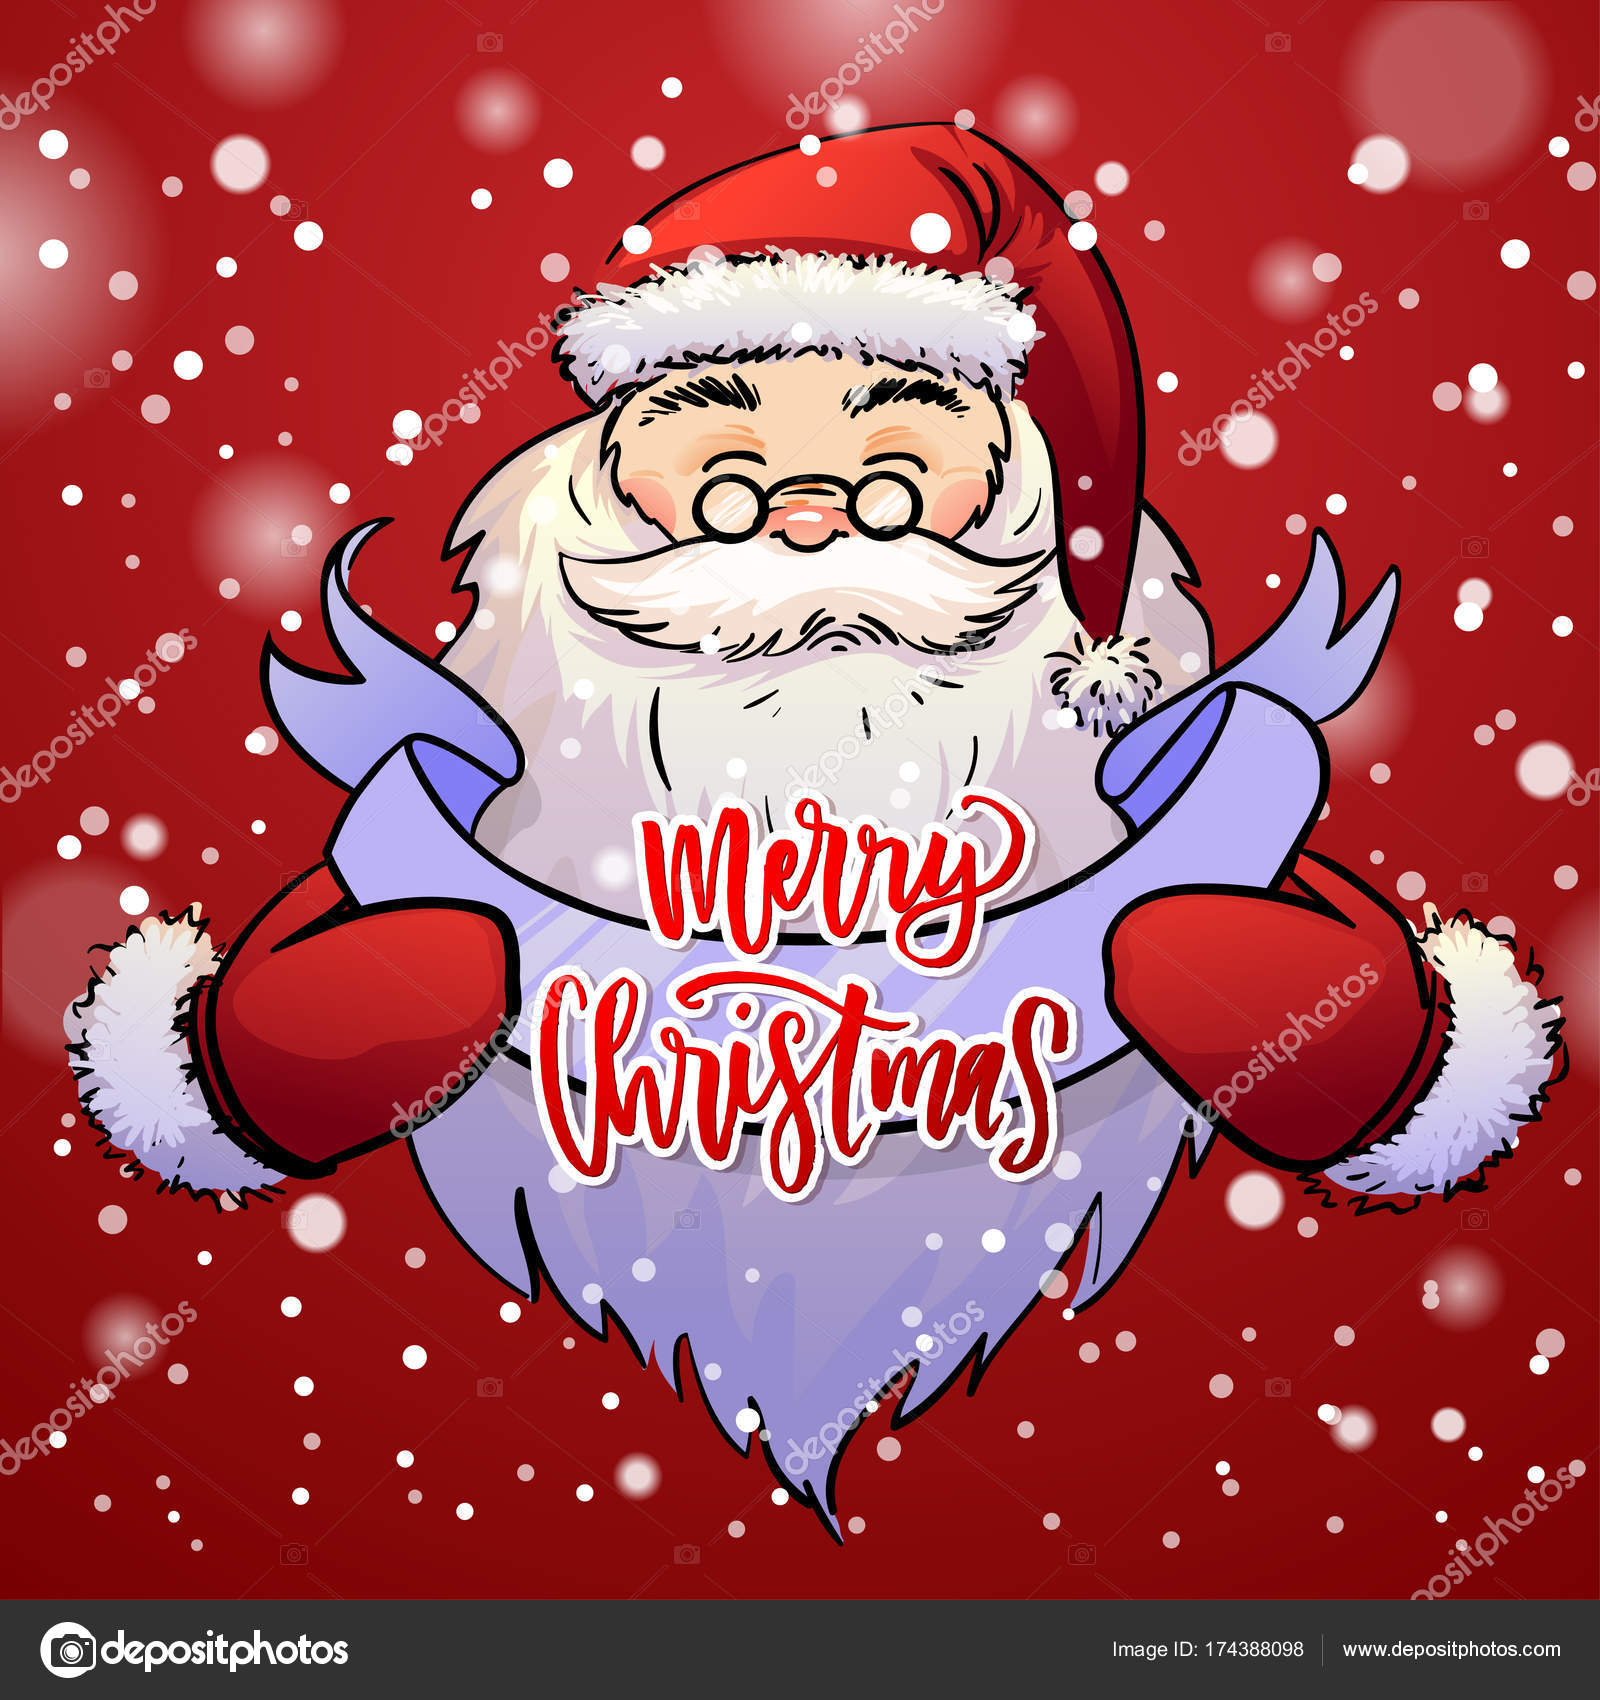 Santa claus holds christmas greeting card with concept handwritten santa claus holds christmas greeting card with concept handwritten merry christmas xmas vector background m4hsunfo